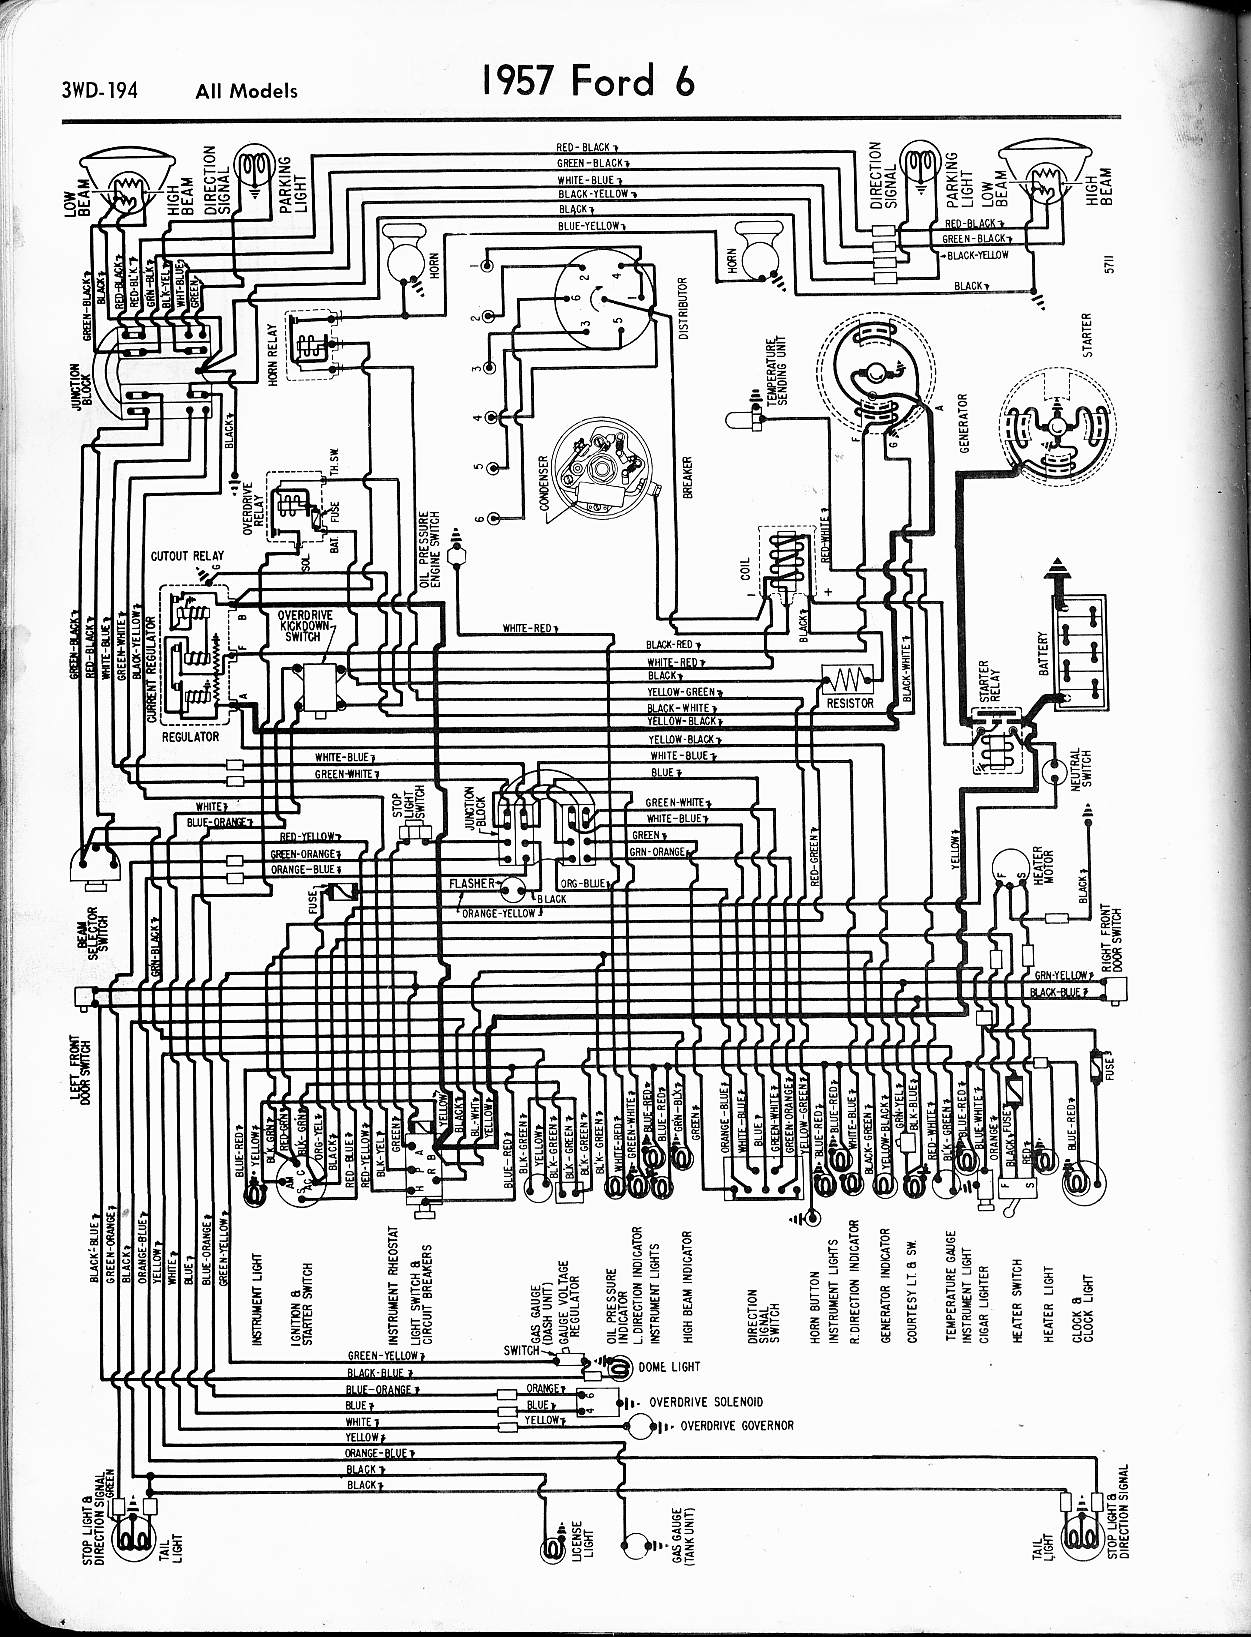 1966 1967 ford fairlane 500 xl or ranchero headlight wiring harnessford fairlane wiring harness wiring diagram 1966 1967 ford fairlane 500 xl or ranchero headlight wiring harness